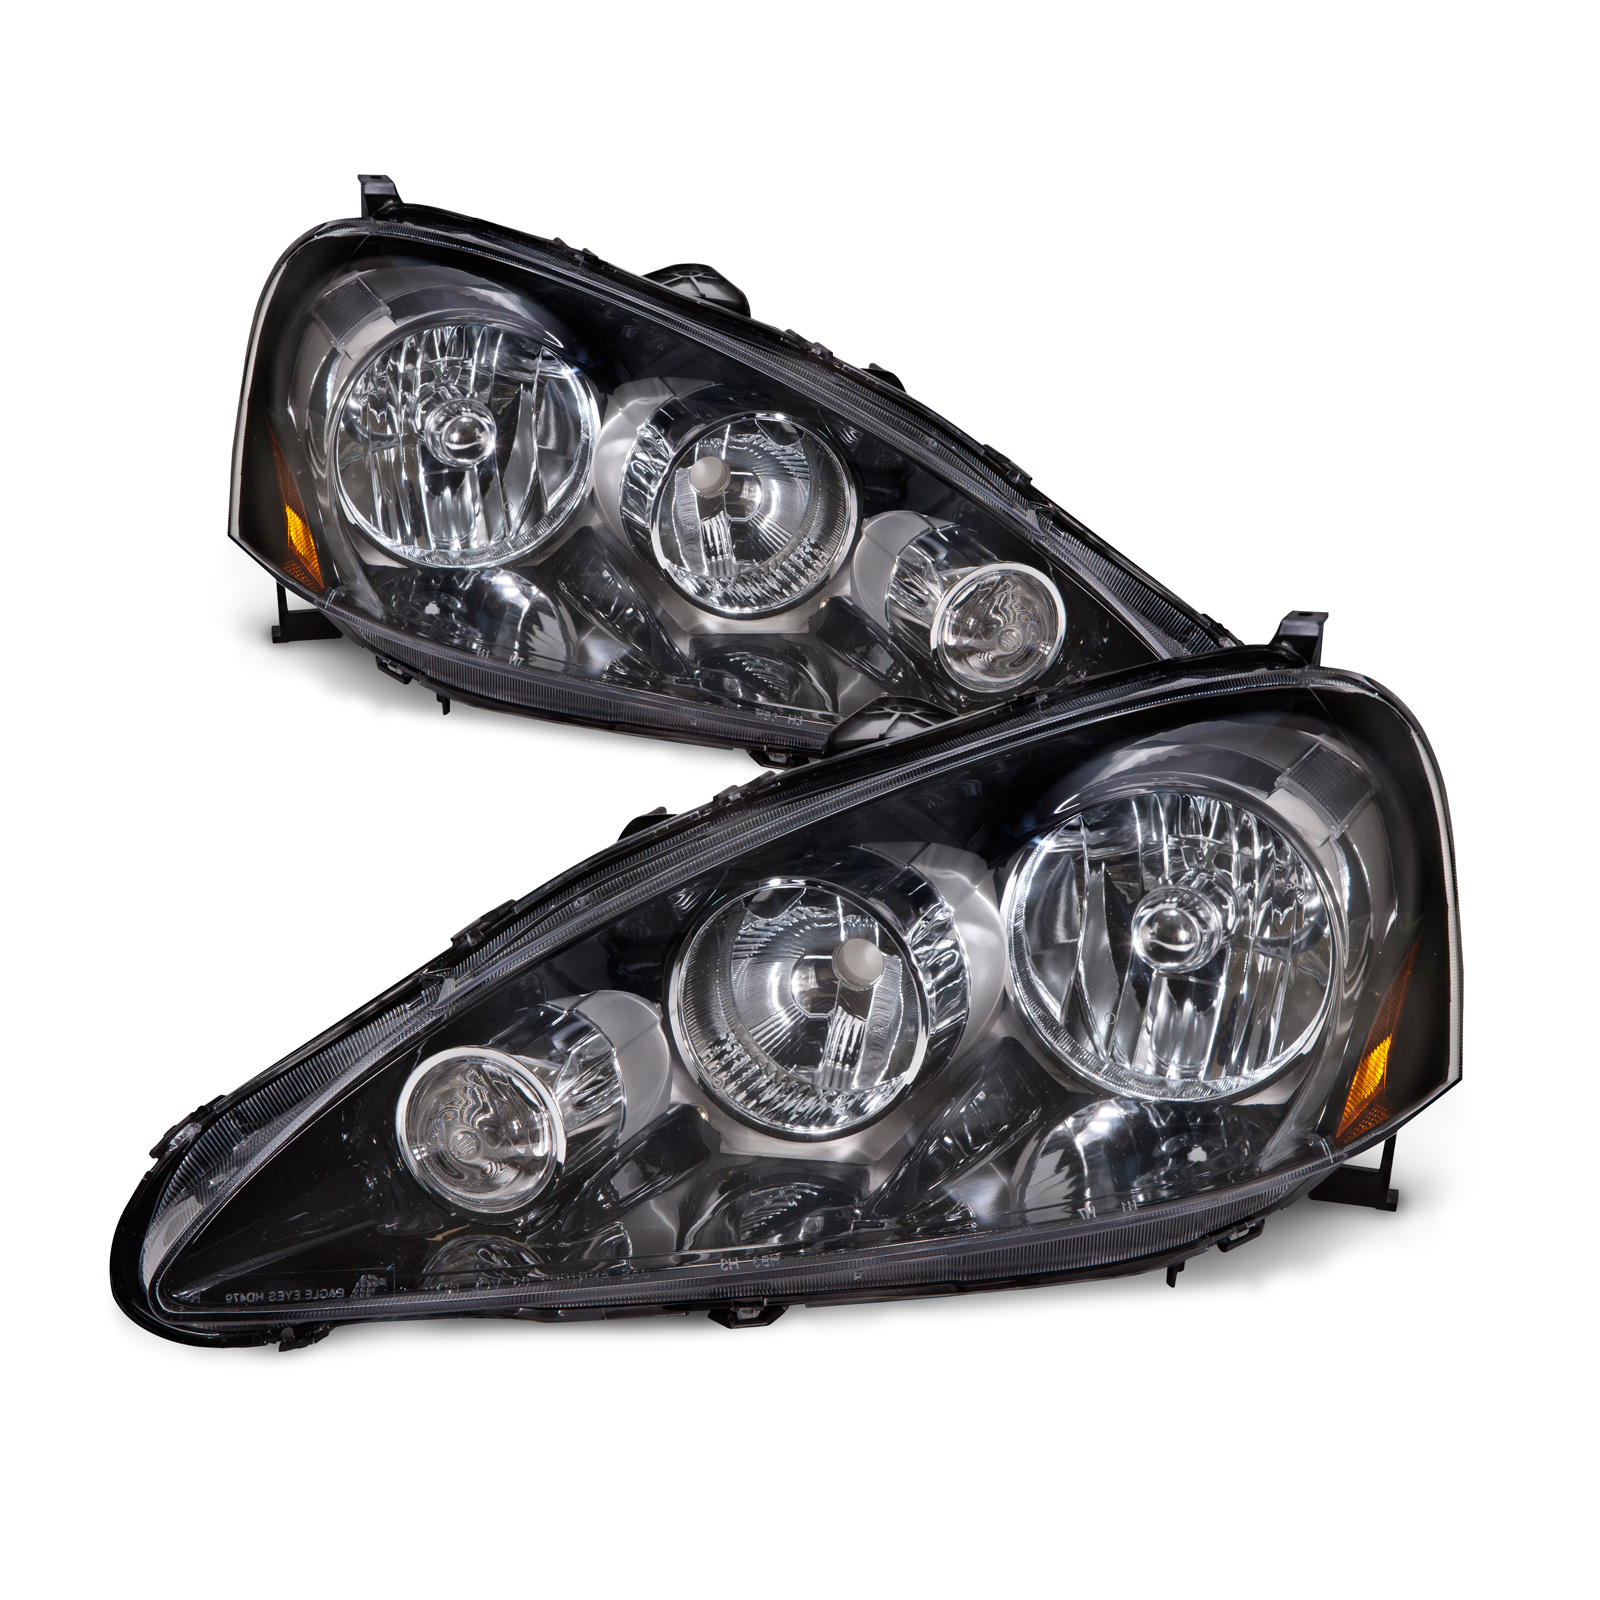 05-06 Acura Rsx Headlights Headlamps Pair Set Left+Right